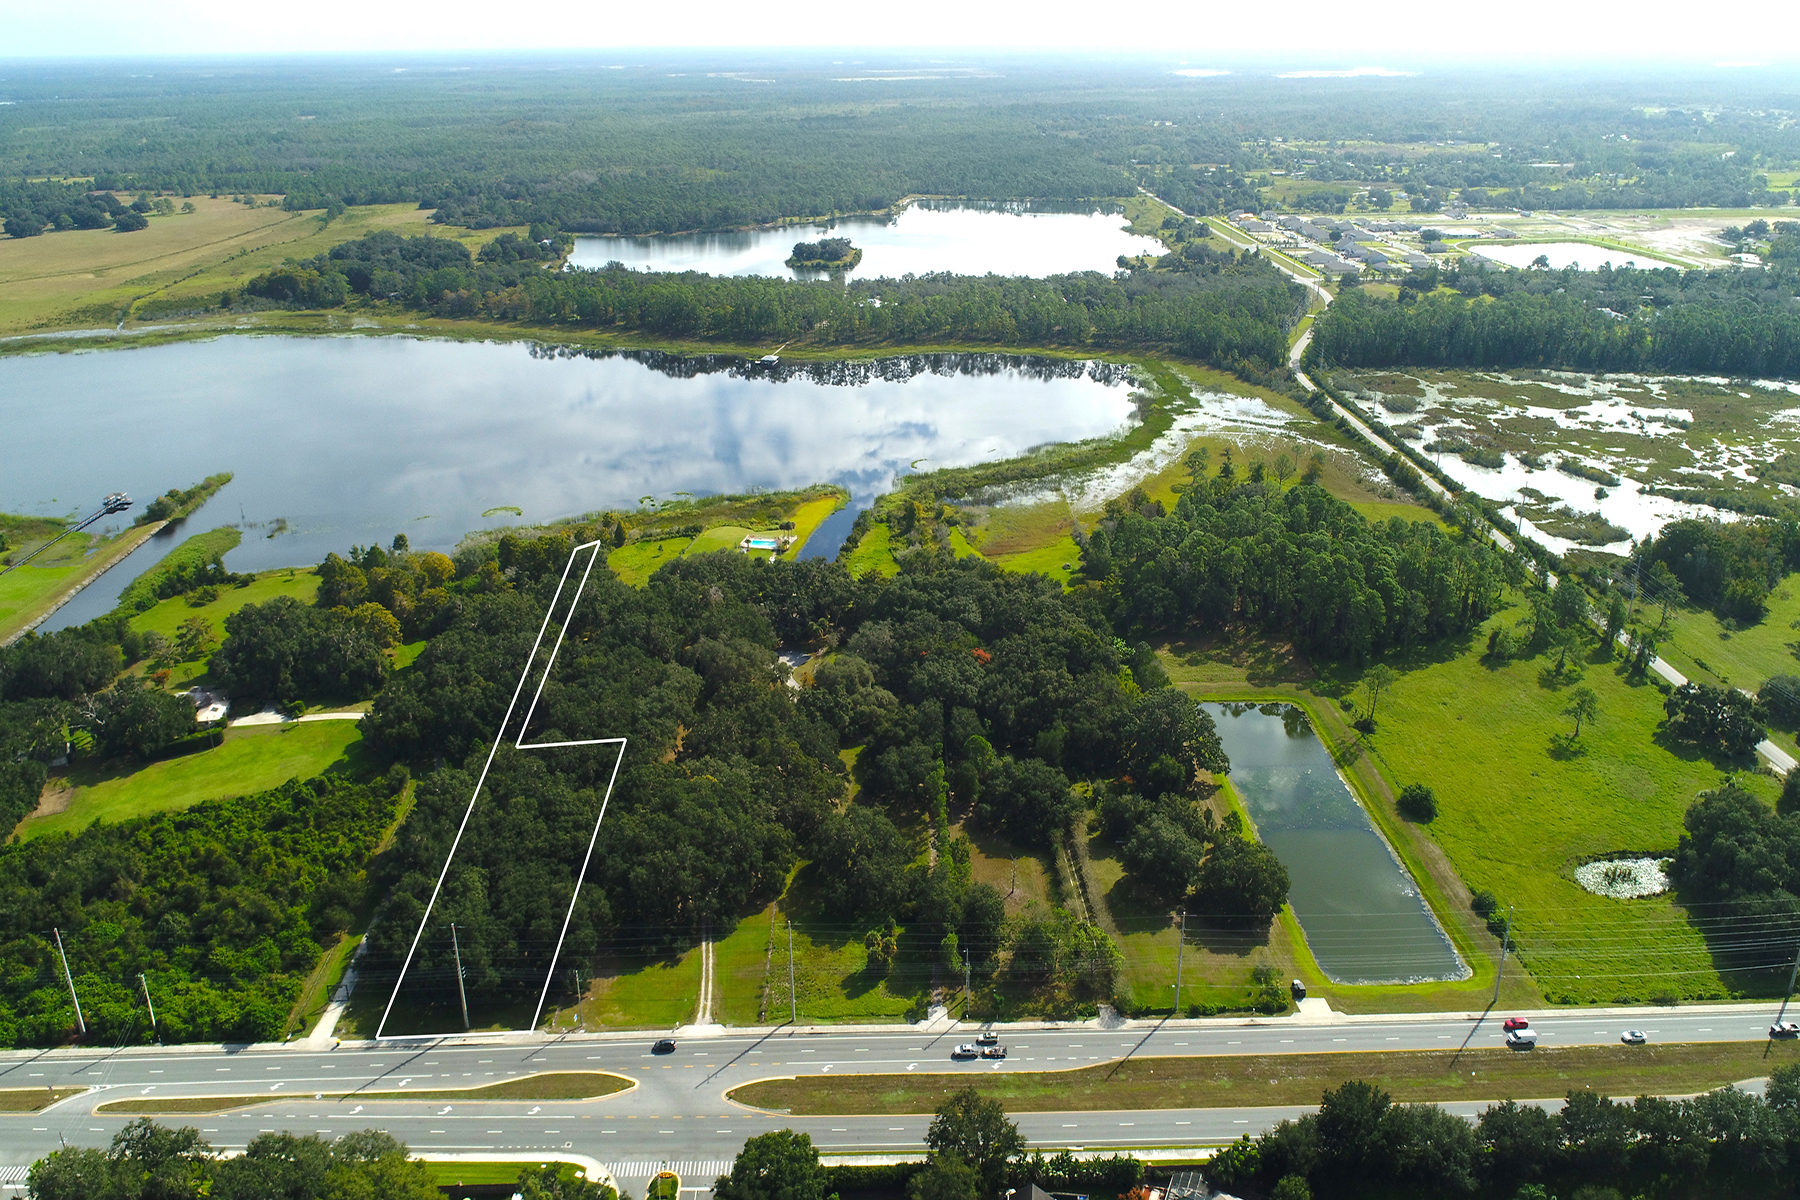 Land for Sale at SAINT CLOUD-ORLANDO N Narcoossee Rd Rd St. Cloud, Florida 34771 United States